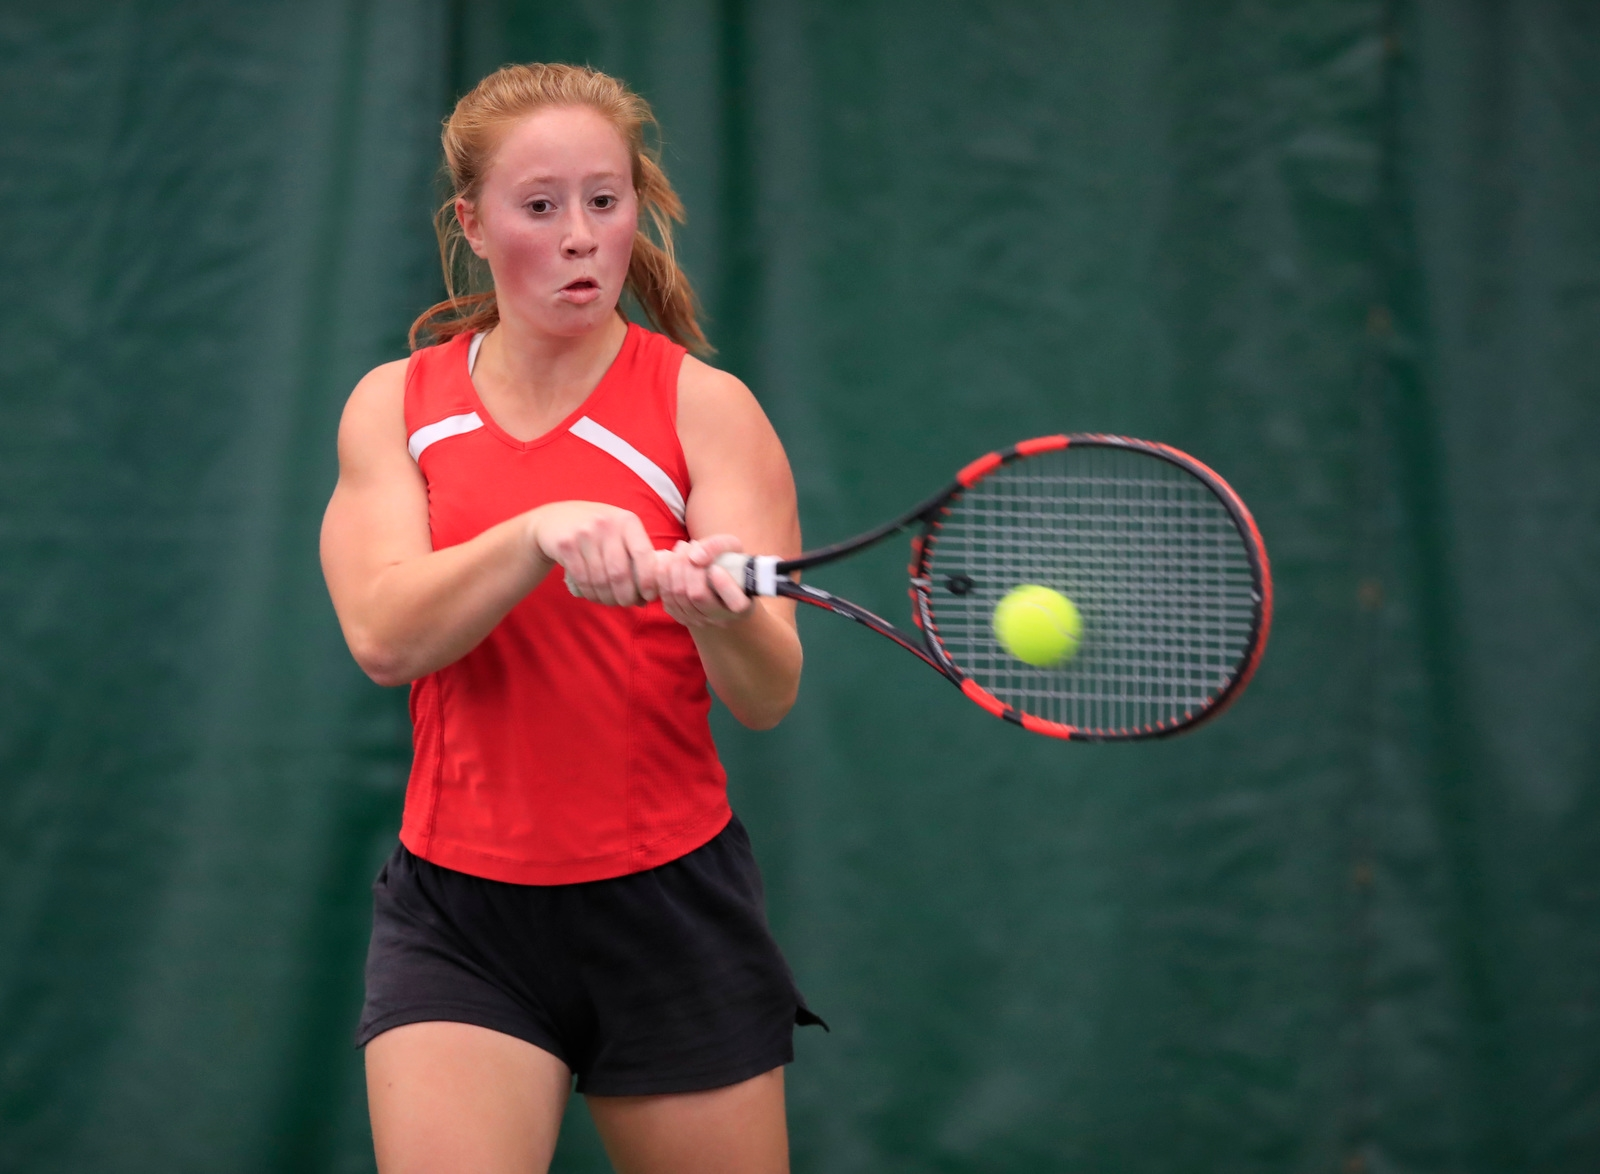 Paige Szmusiak from Lancaster high school during Section semi-final action at the Miller Tennis Center on Saturday, Oct. 21, 2017.